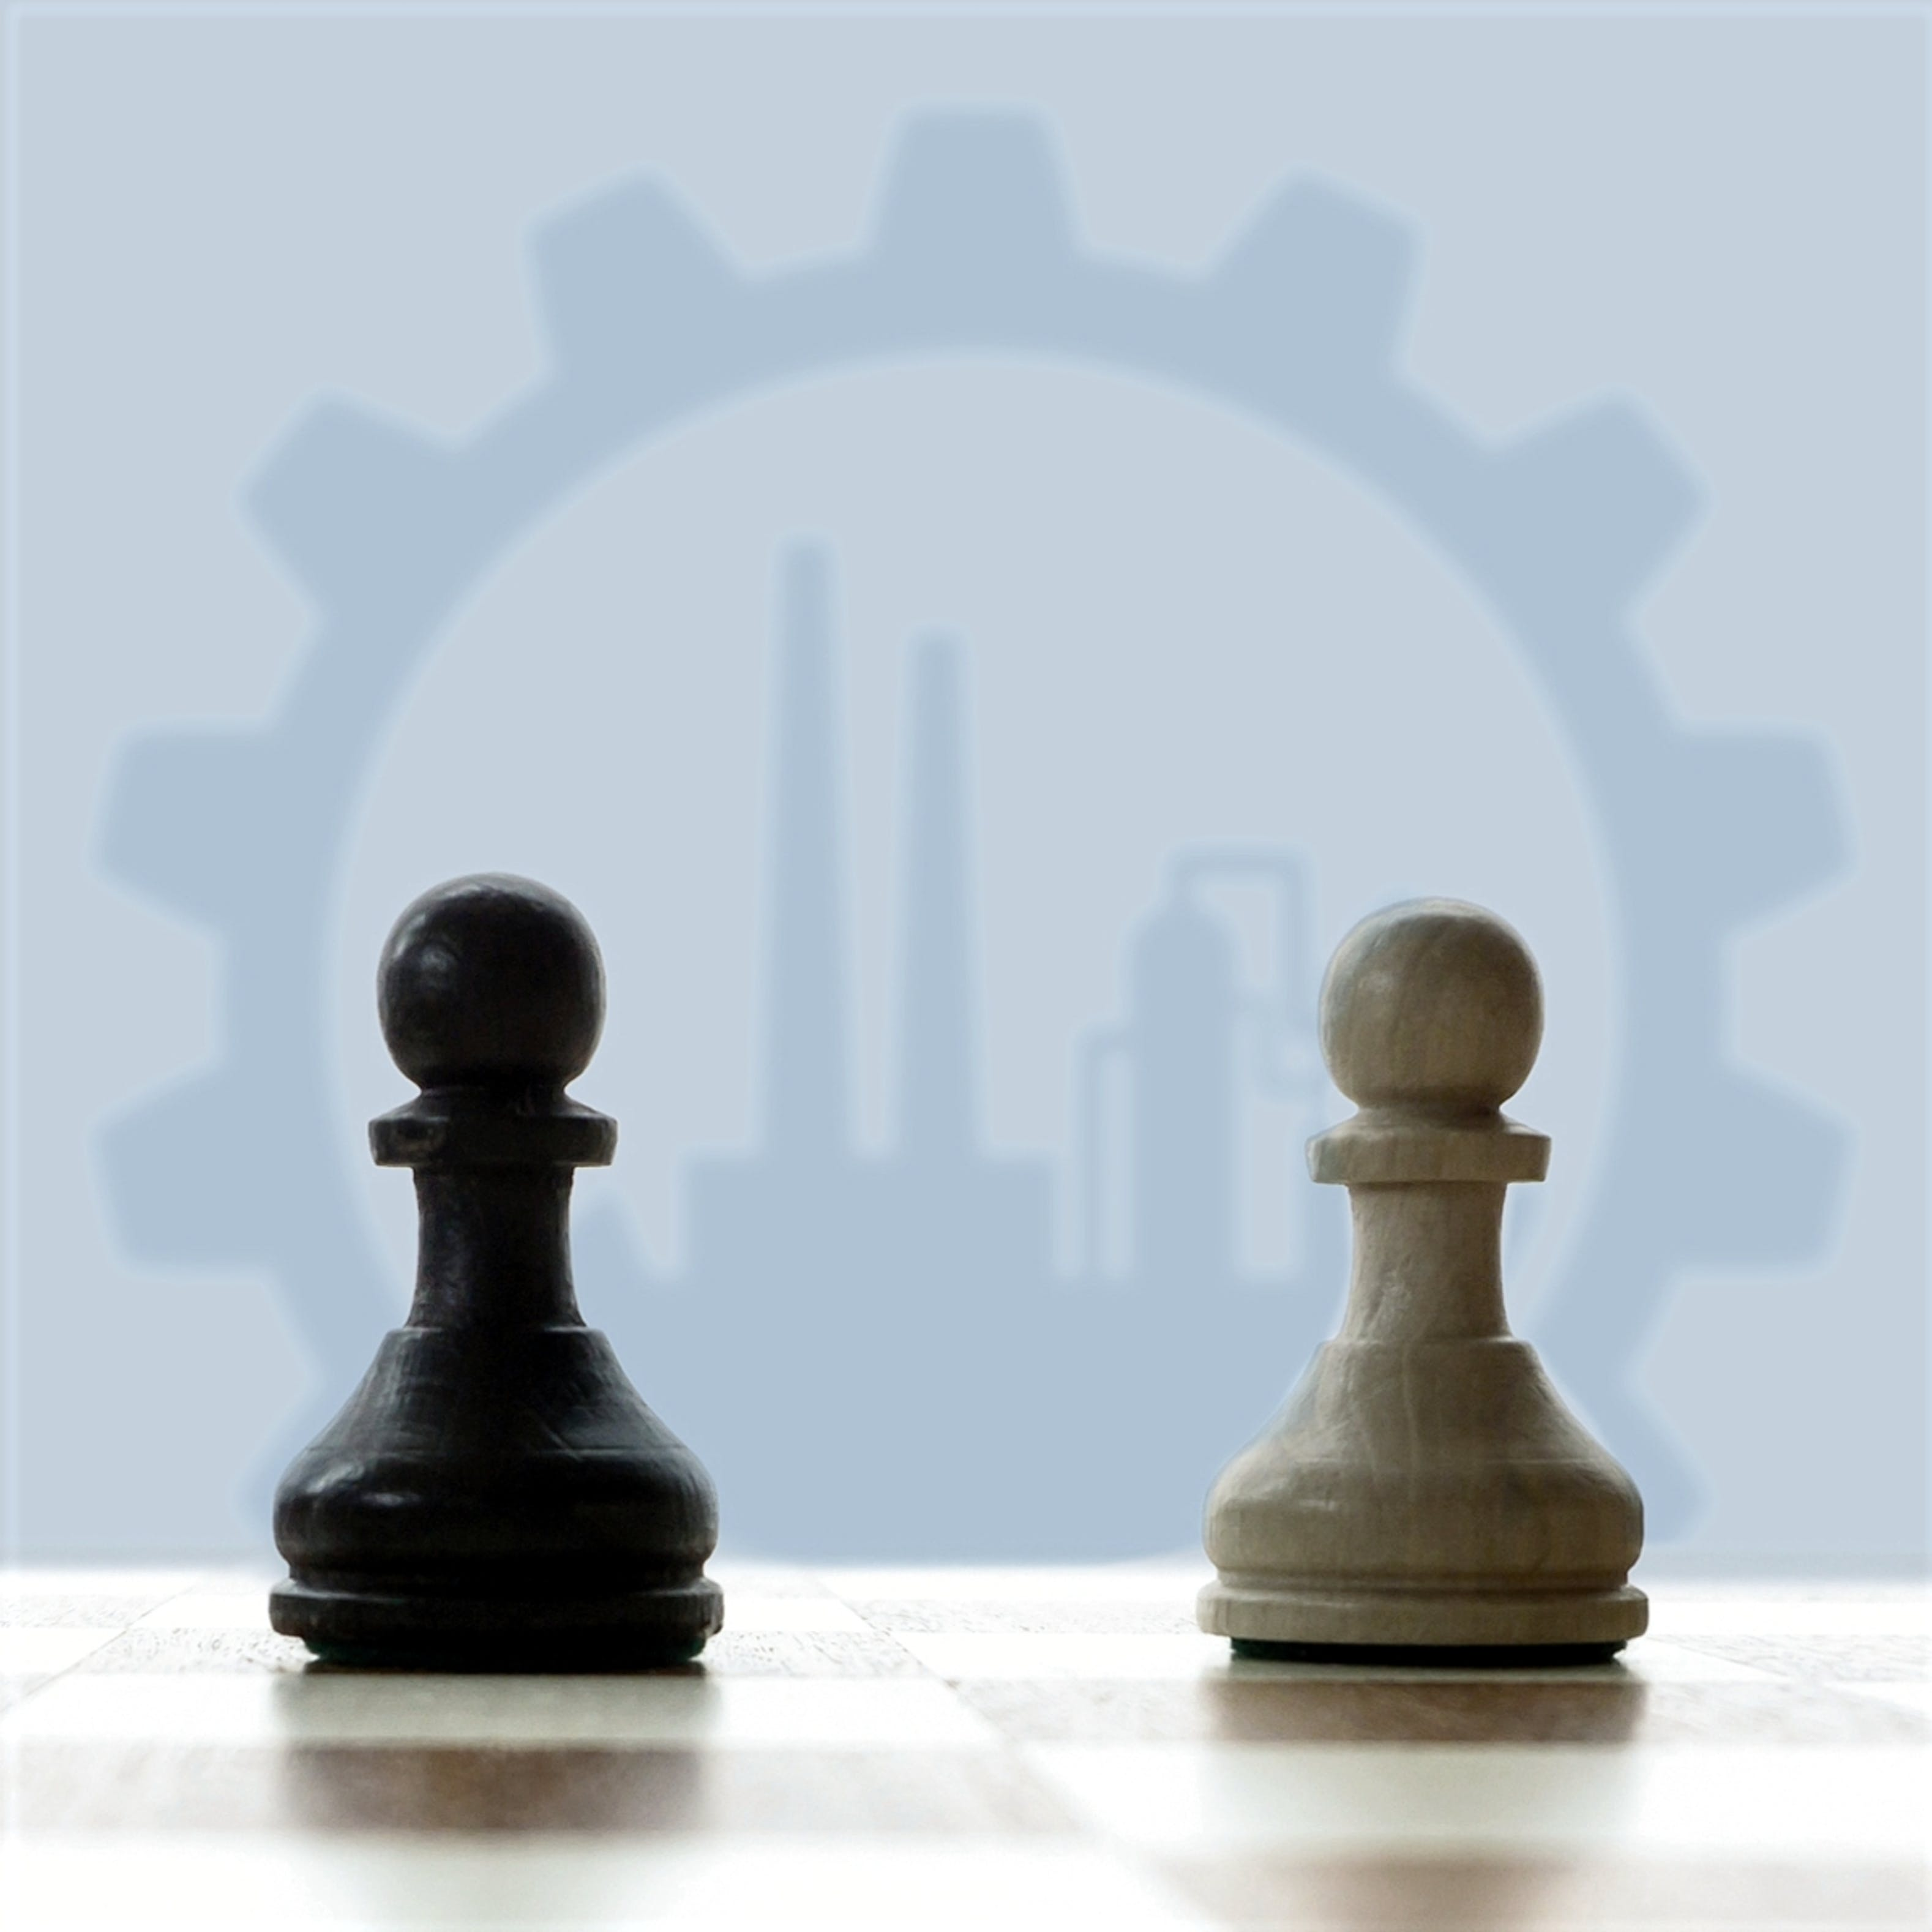 Industrial Organization: Strategy and Competition in